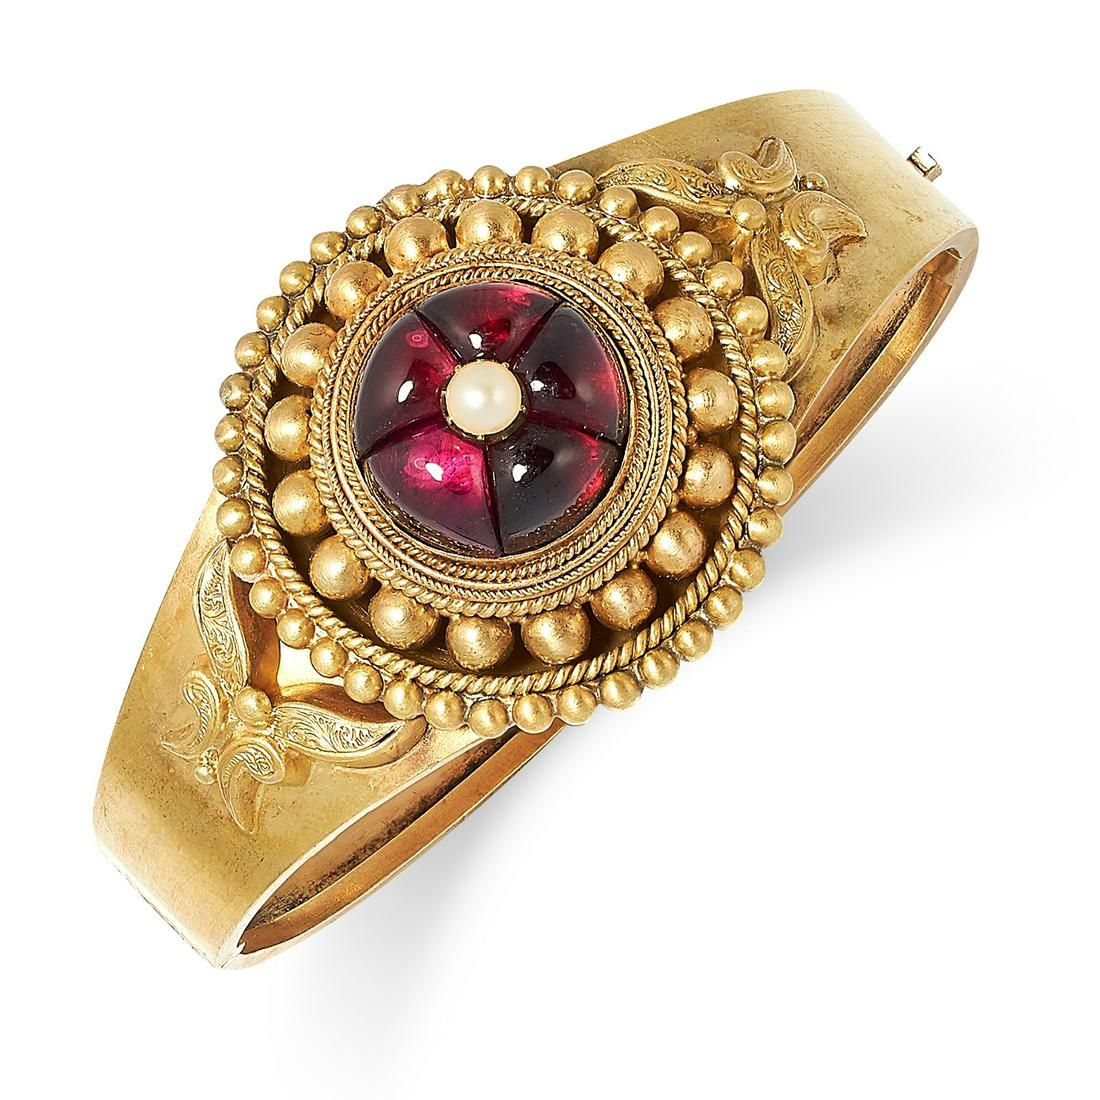 ANTIQUE VICTORIAN GARNET AND PEARL BANGLE set with